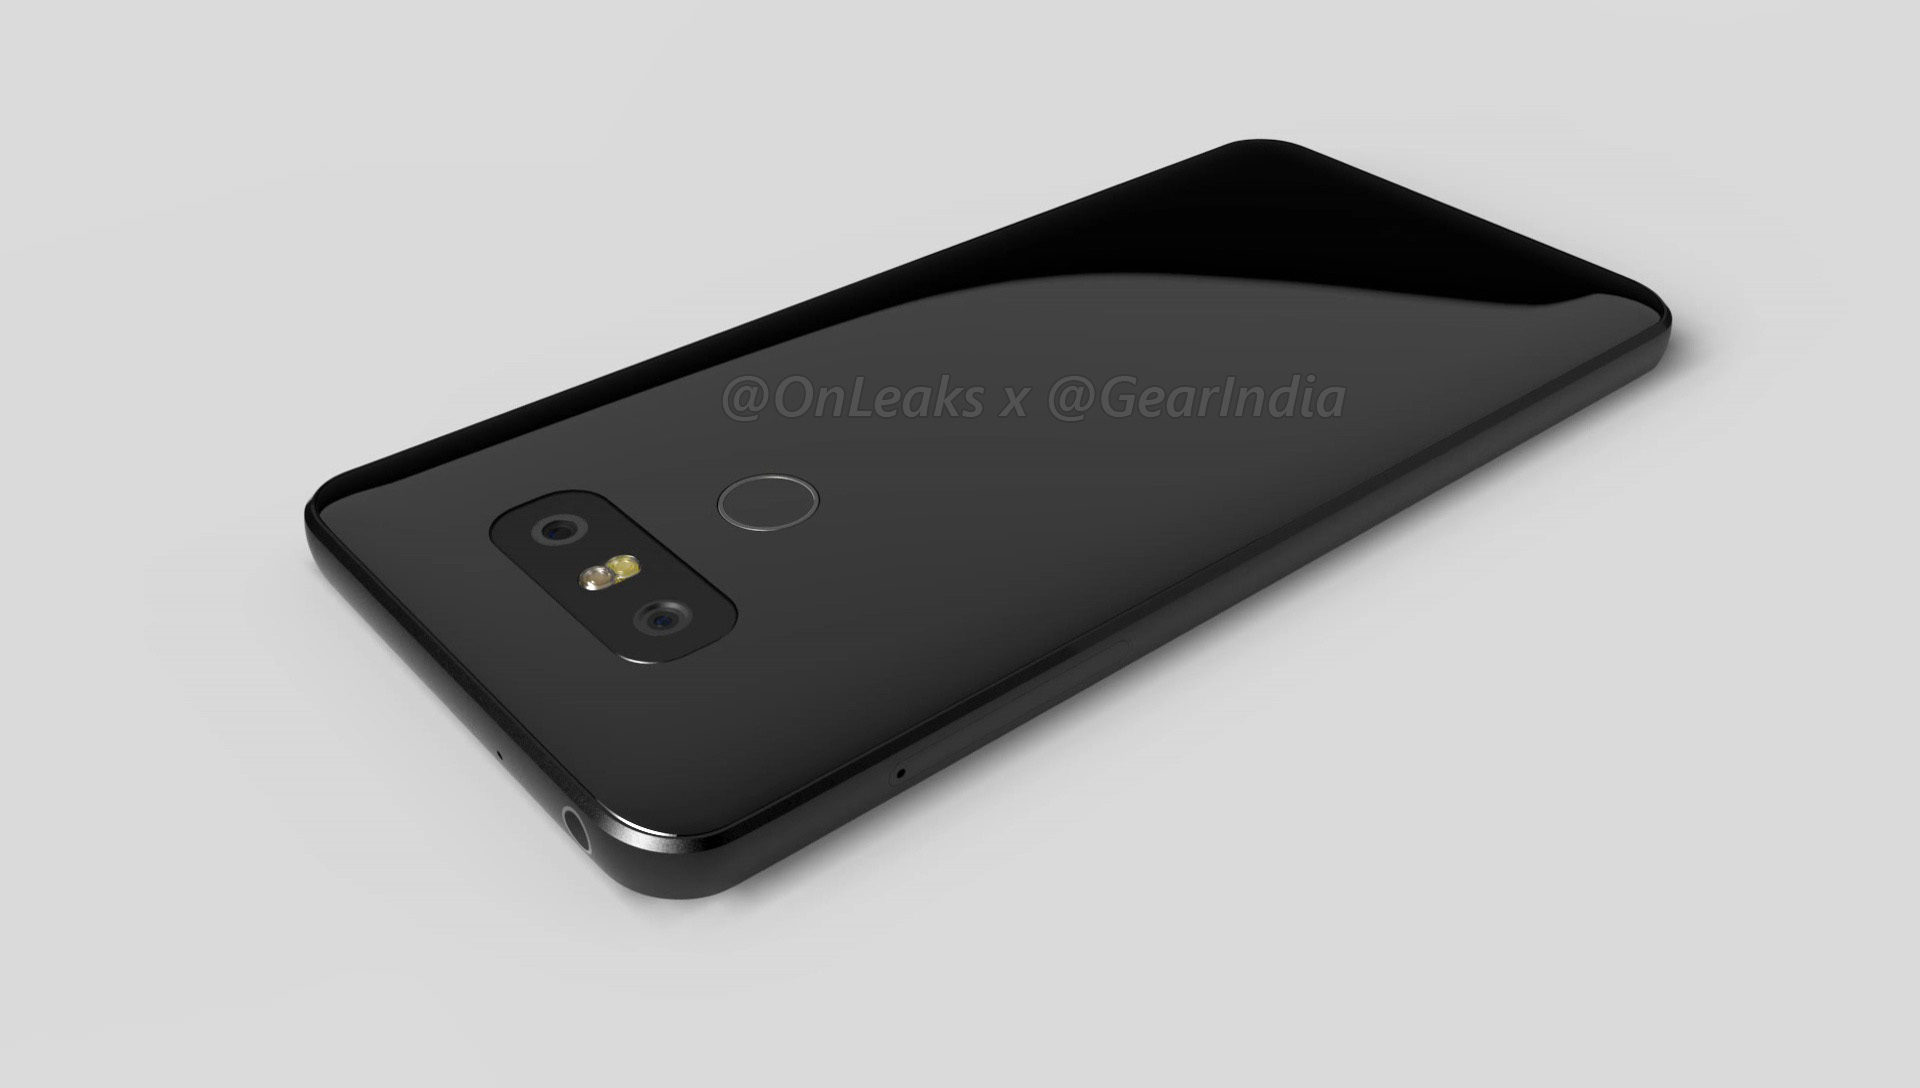 Renders-of-LG-G6-based-on-factory-CAD-images 4.jpg